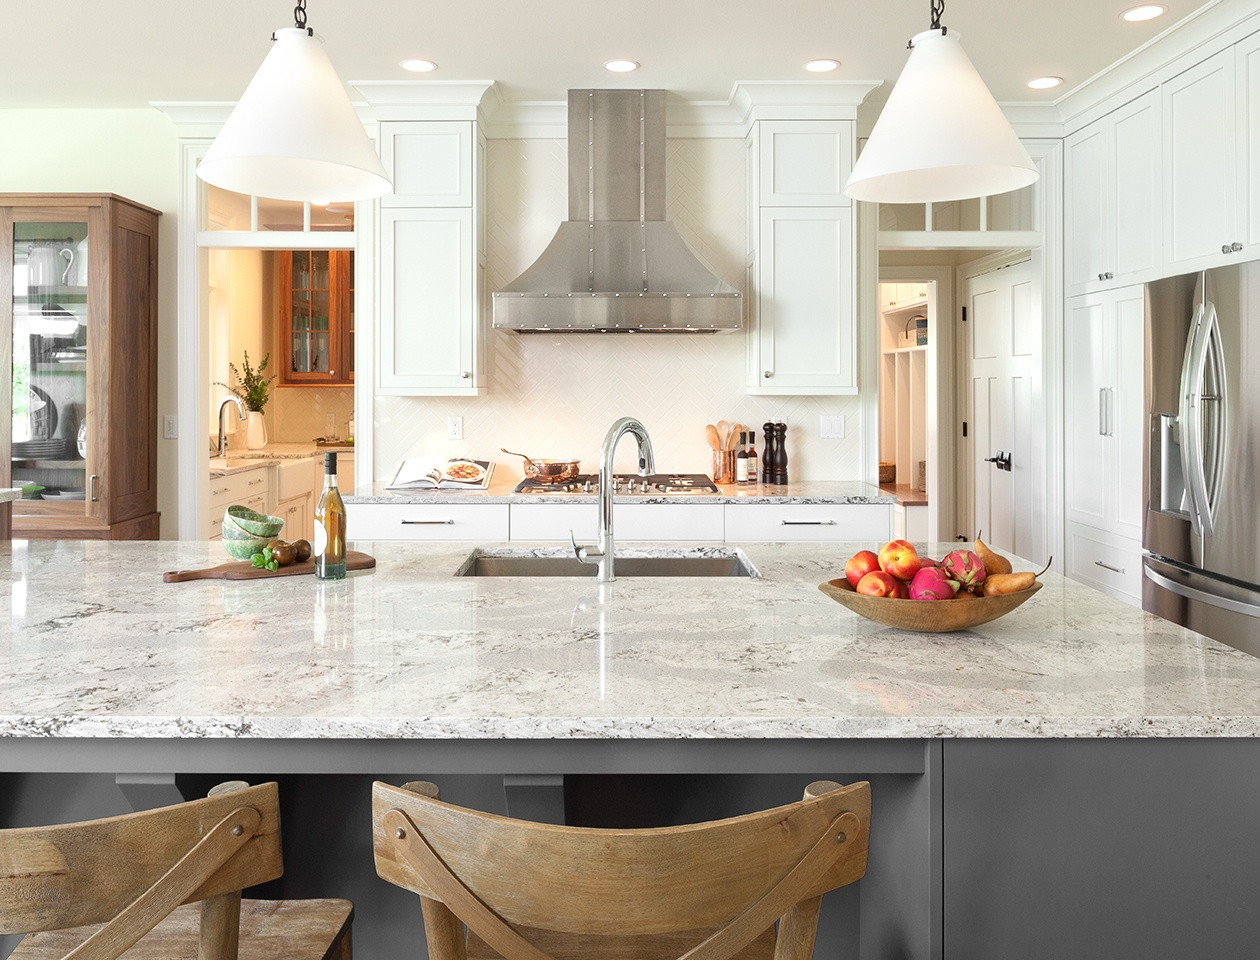 The Diffe Types Of Quartz Countertops And How To Care For